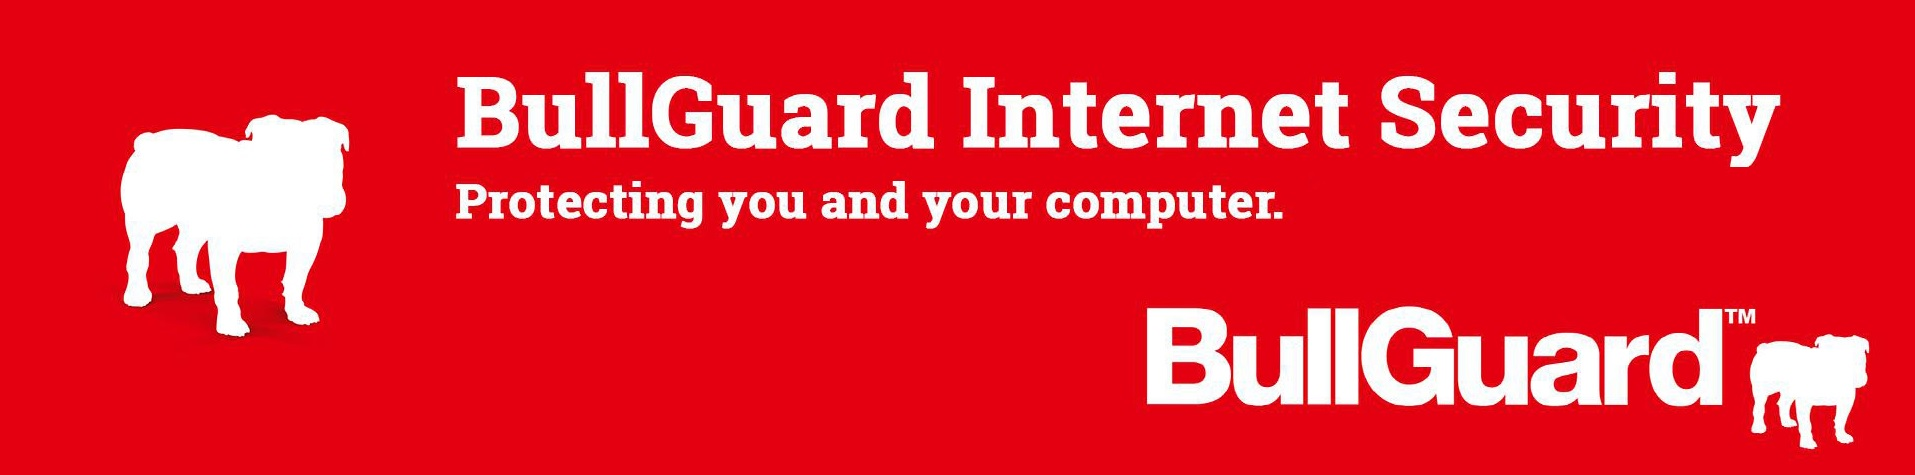 BullGuard Internet Security 2020 Review